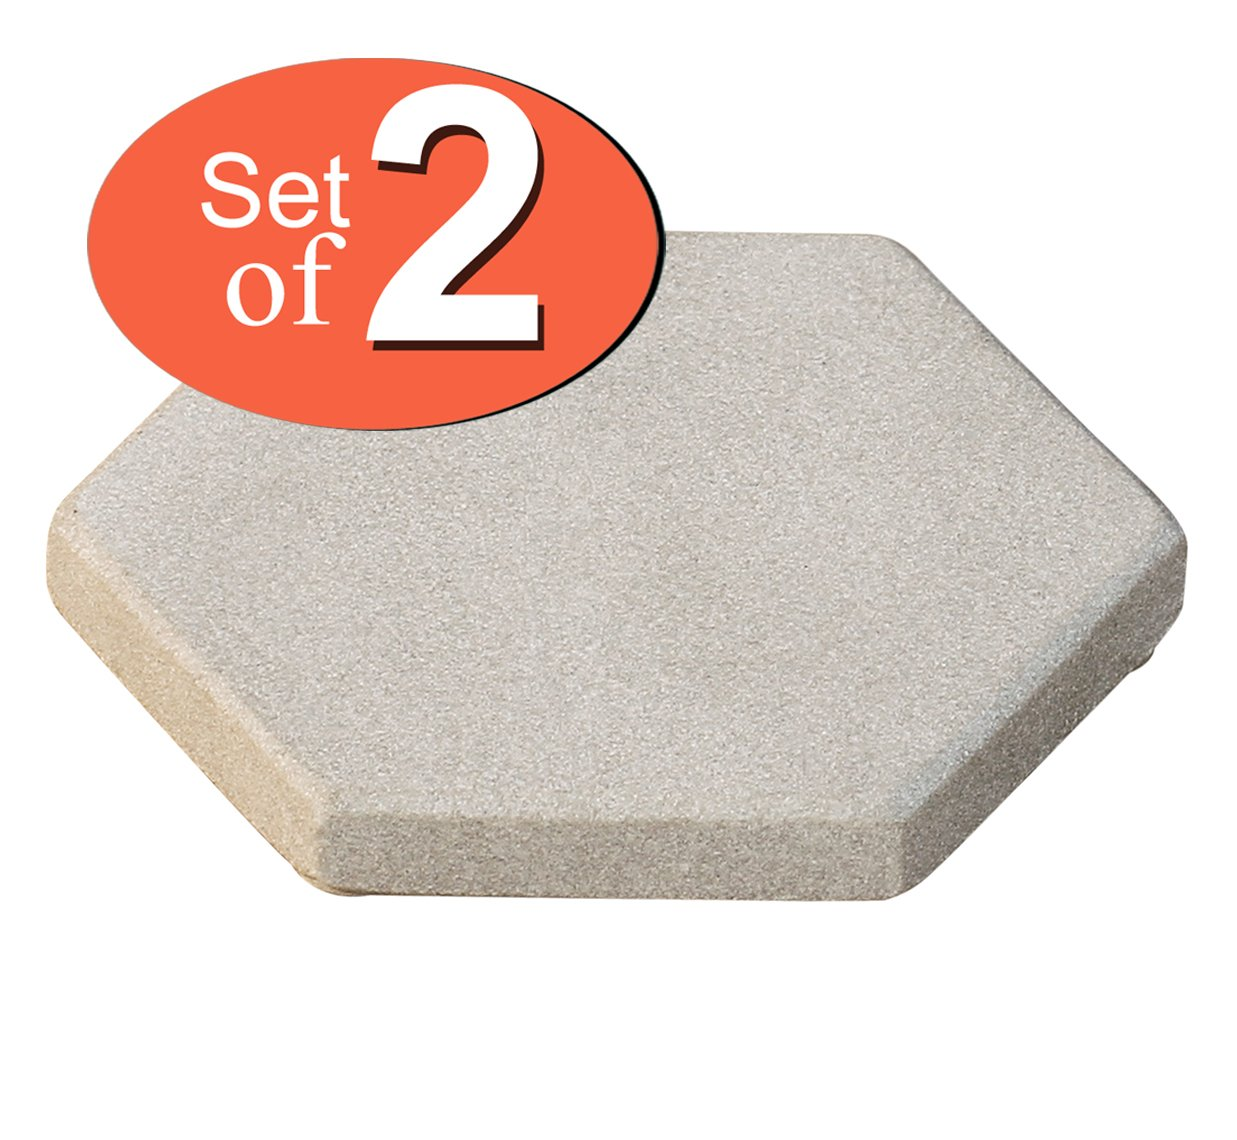 USE COUPON CODE Absorbent Sandstone Drink Coasters Set of 2 - Natural Moonlight-White Hexagonal Handmade Stone Beverage Coasters - 4 Inch - Sale on Bar Kitchen Dining Coasters / Accessories